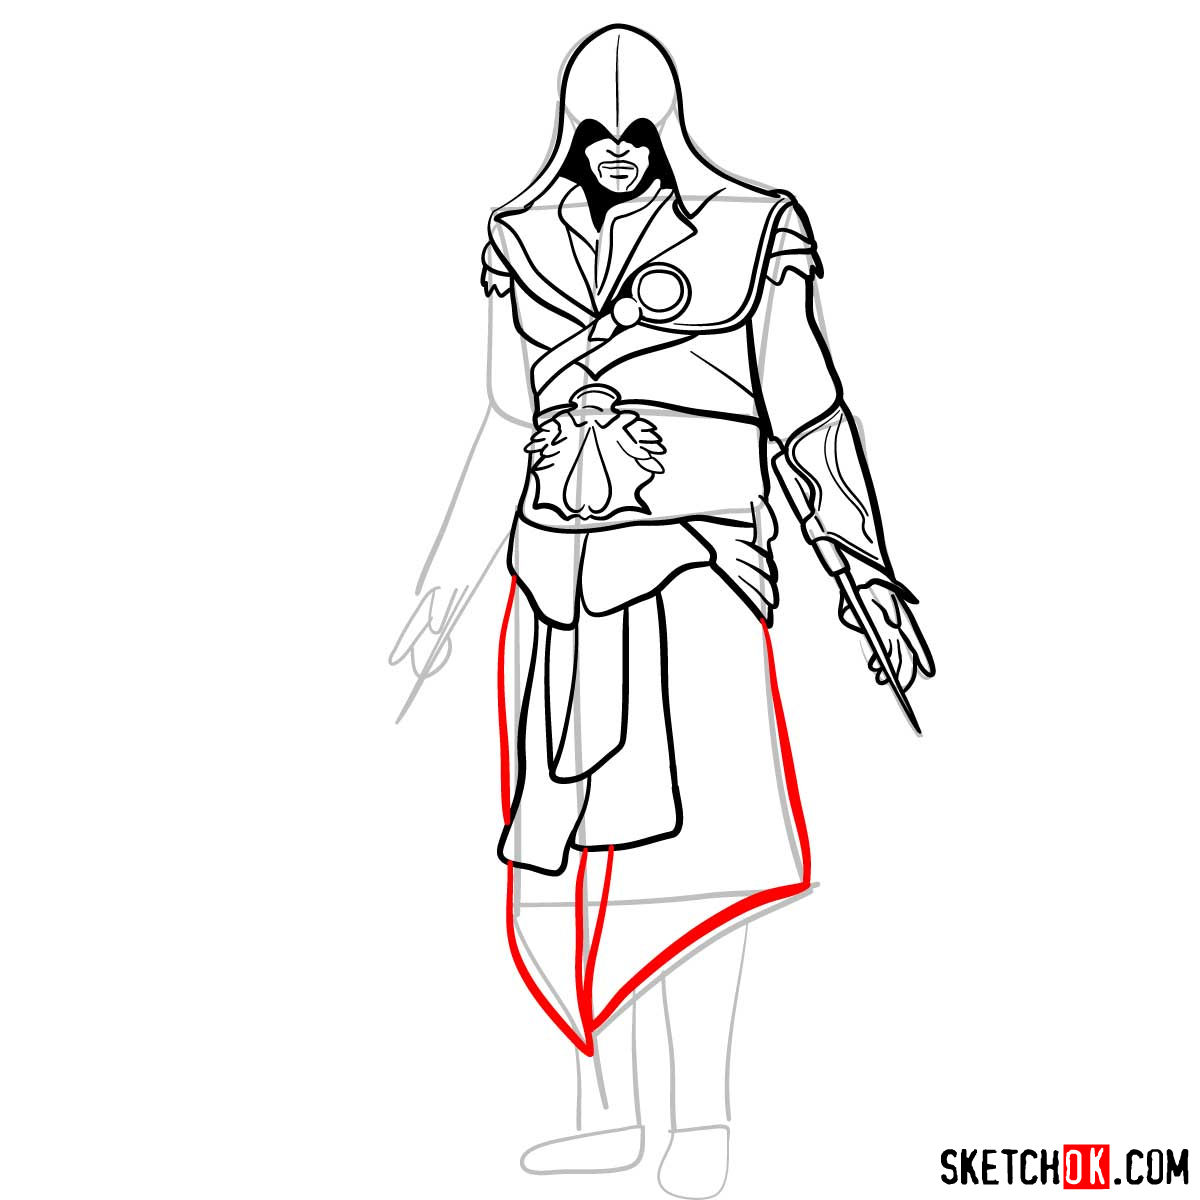 How to draw an Assassin from Assassin's Creed game - step 13